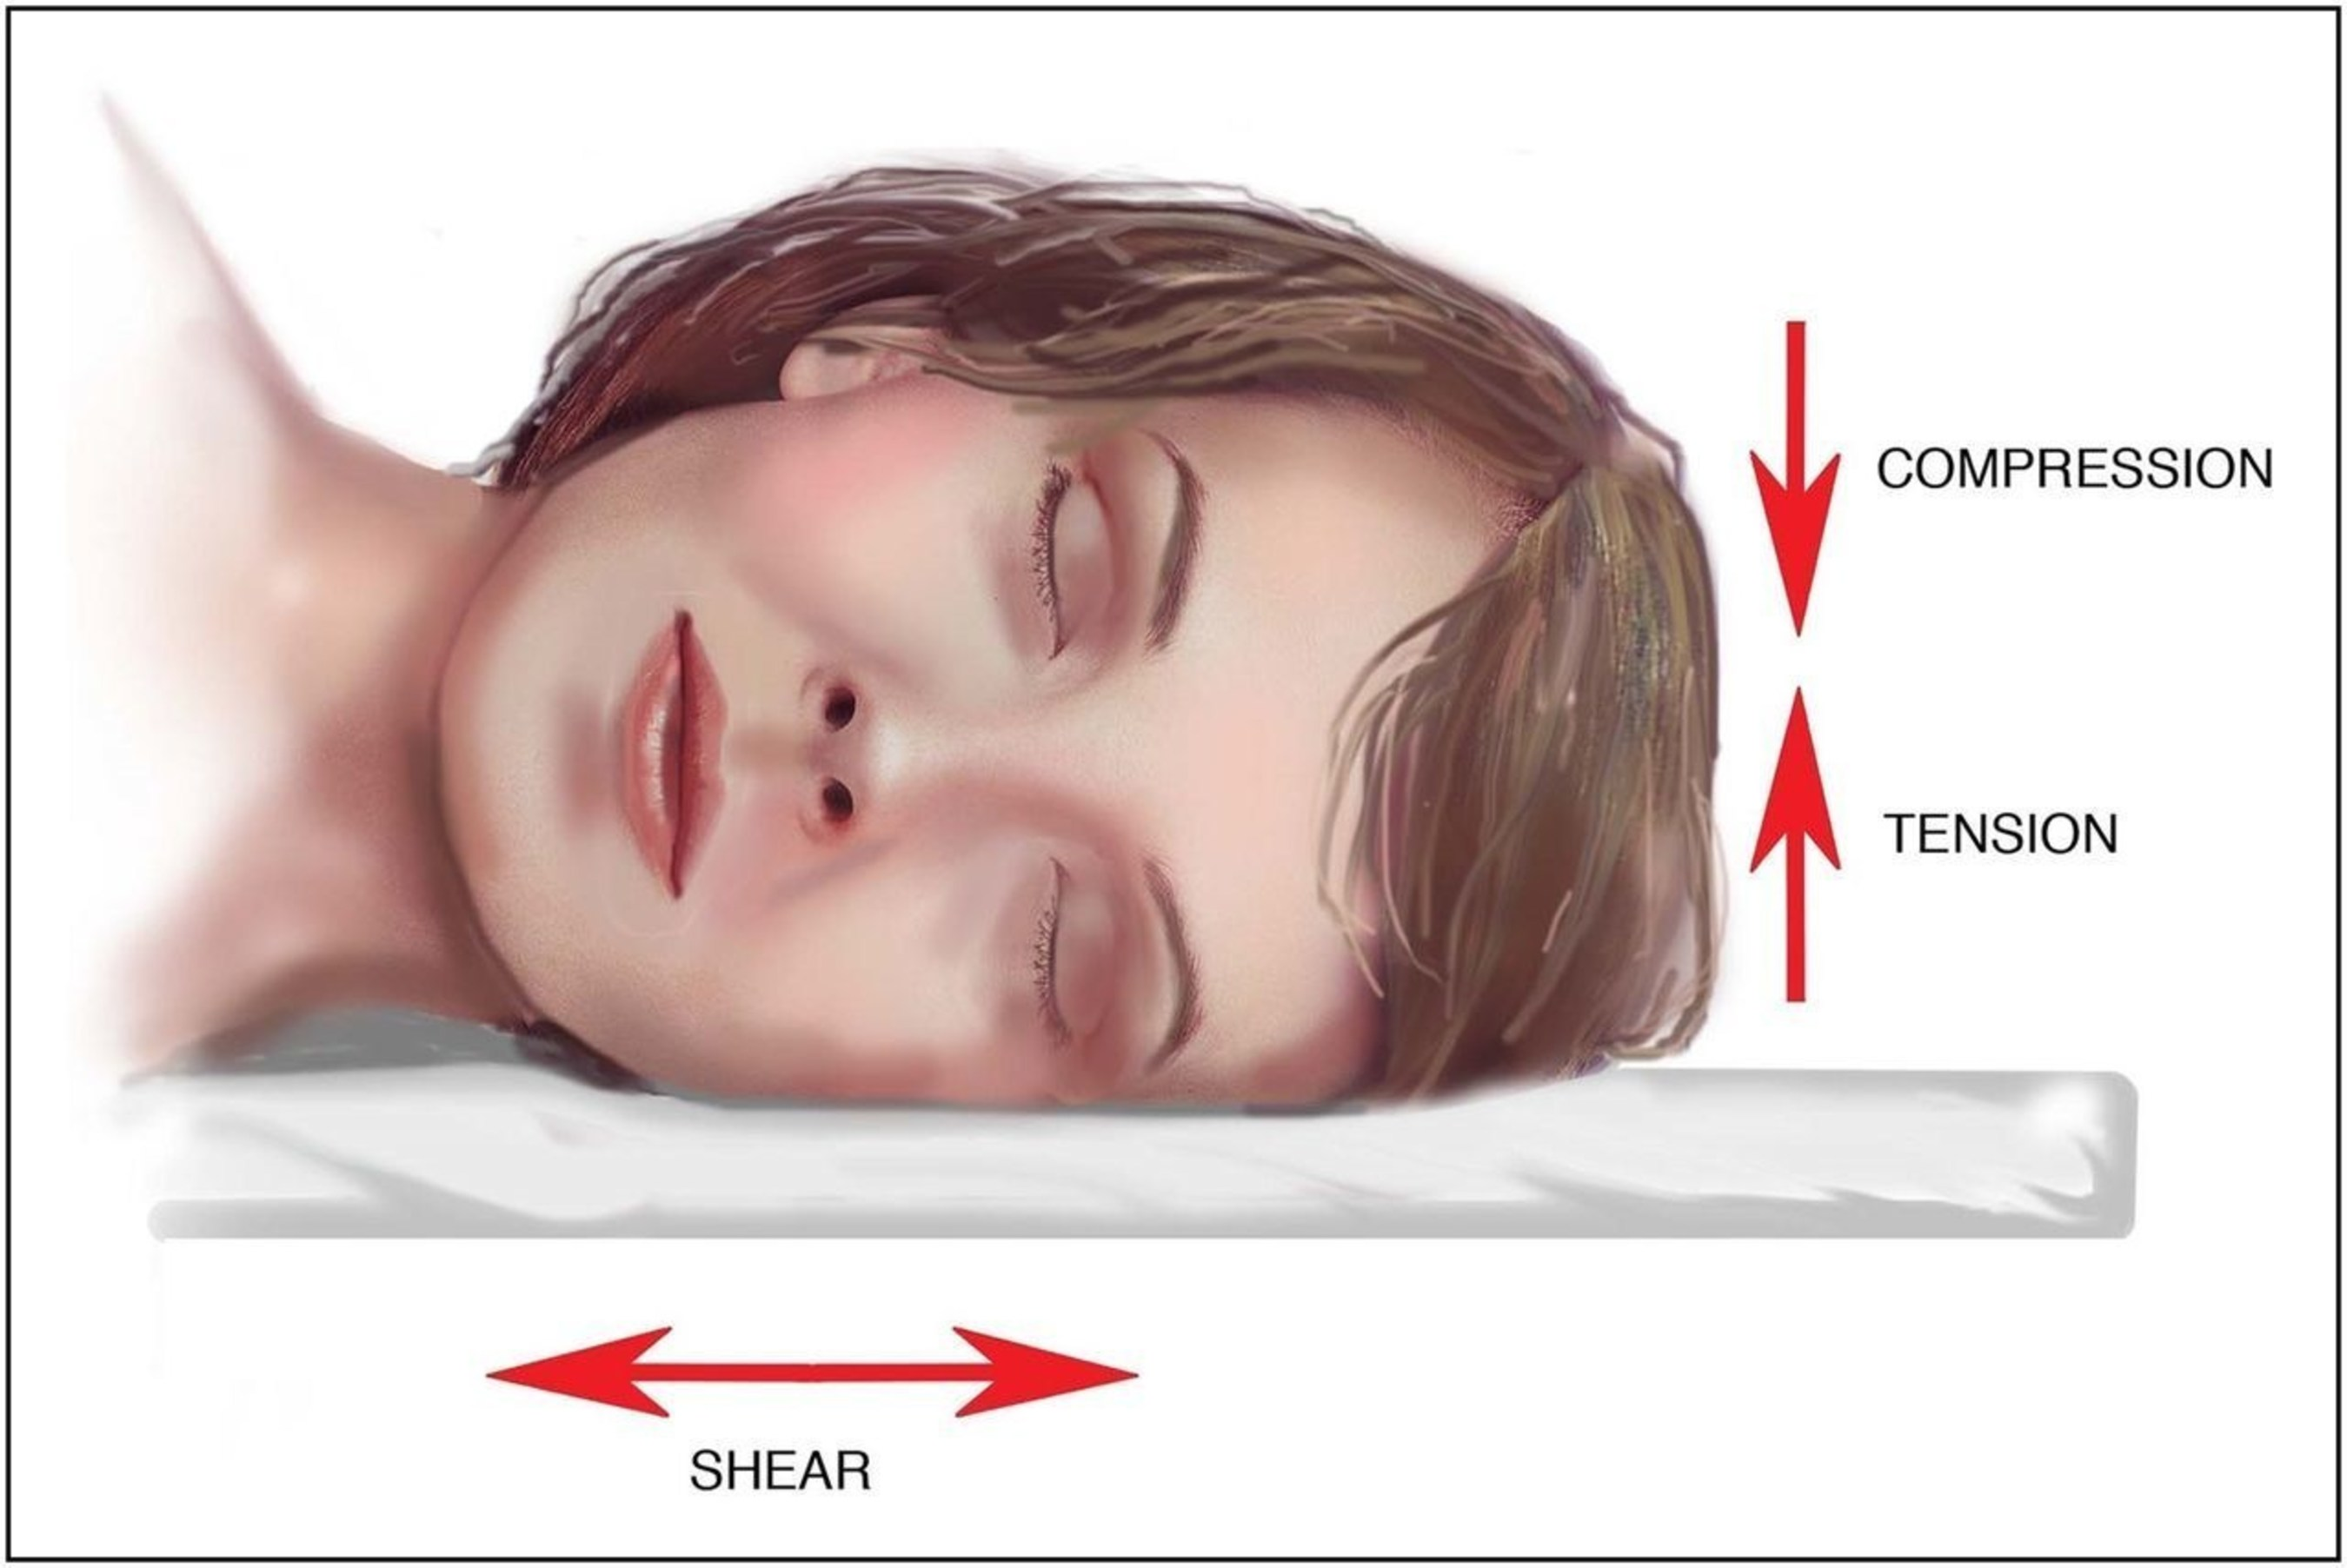 External forces (including compression, tension, and shear) act on facial tissue in stomach or side sleep positions.